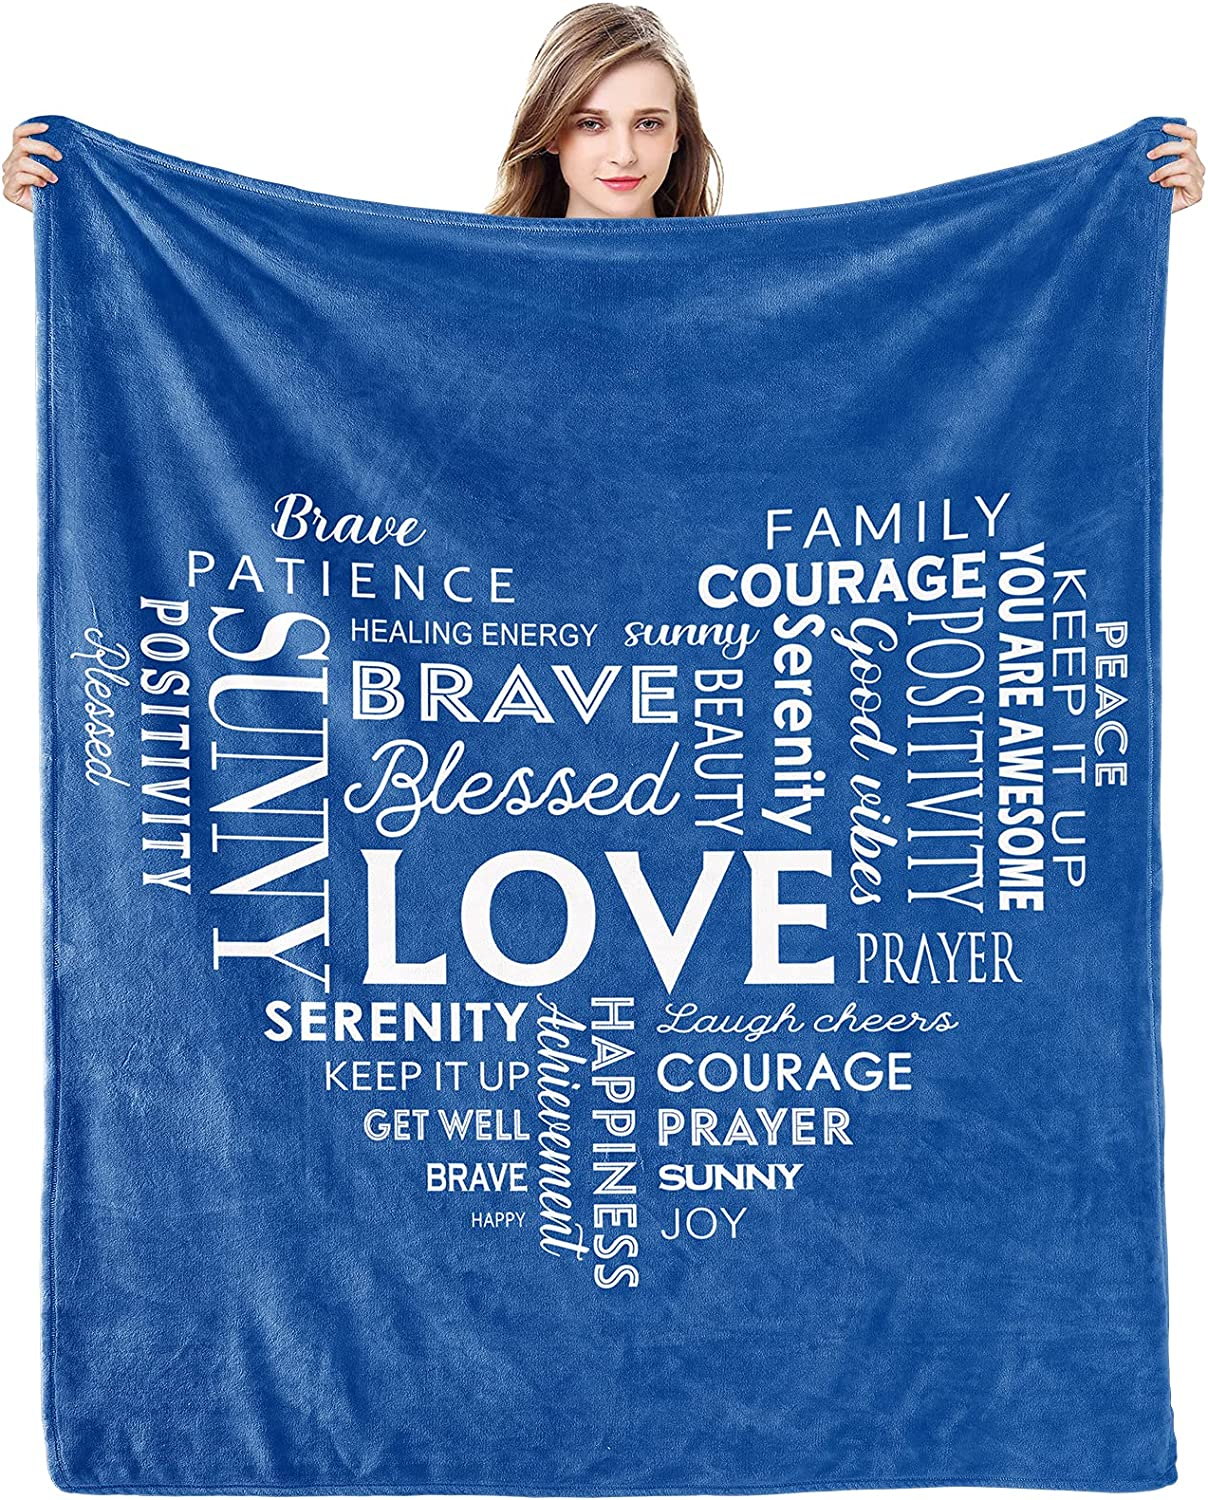 Healing Thoughts Throw Washington Mall Blanket Get Wo for Max 54% OFF Soon Well Gift